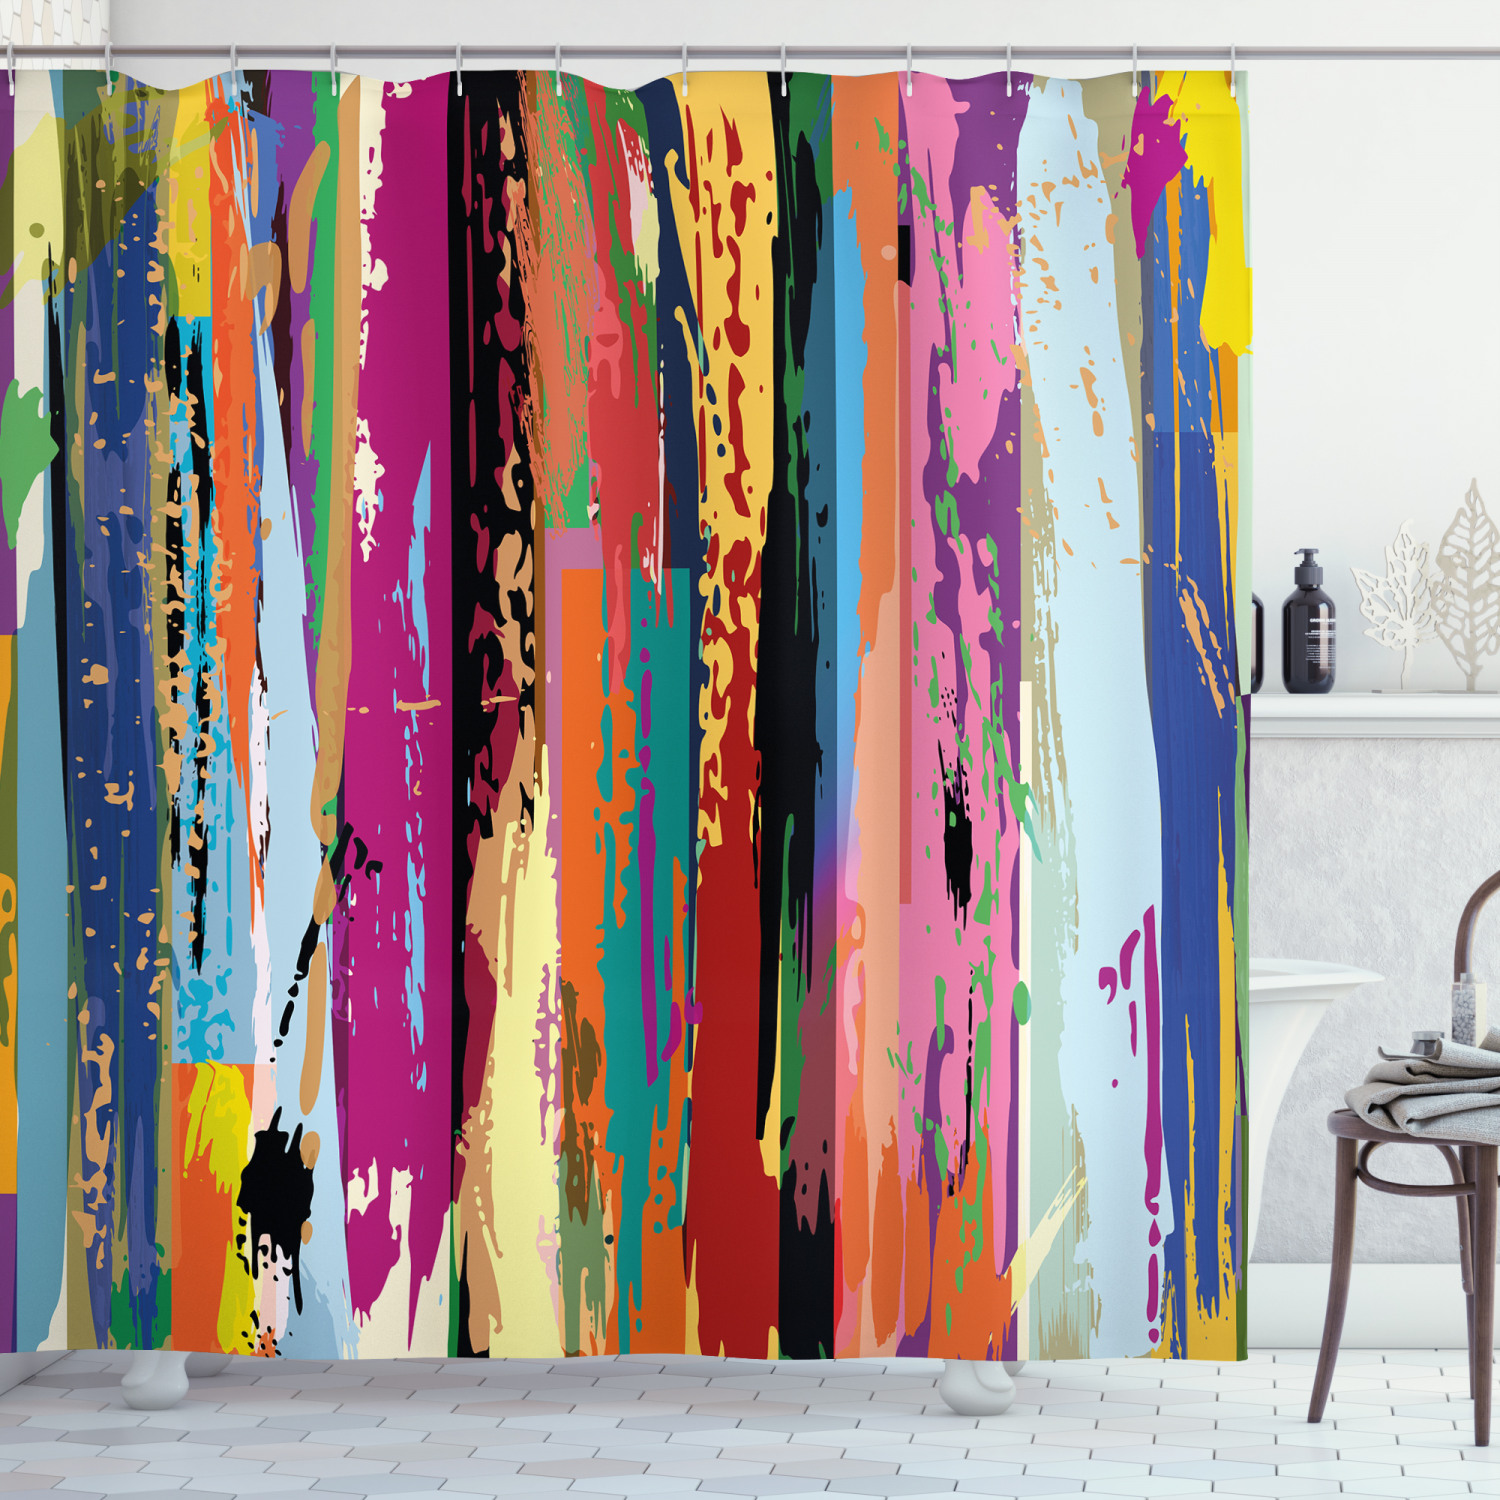 abstract shower curtain multicolored expressionist work of art vibrant rainbow design tainted pattern fabric bathroom set with hooks 69w x 70l